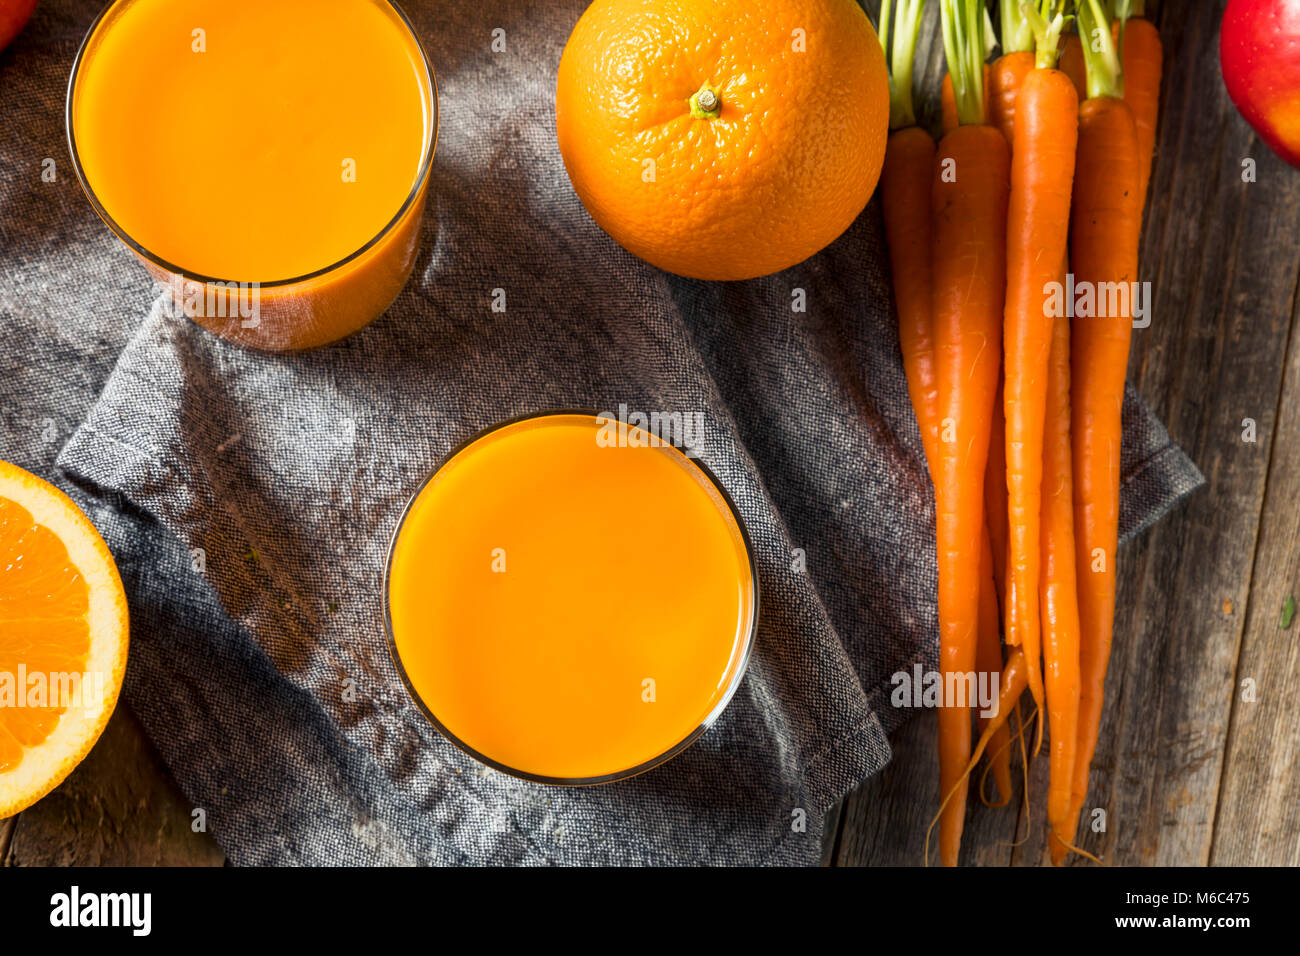 Smoothie carotte orange organique saine boisson de jus de mangue et de banane avec Photo Stock